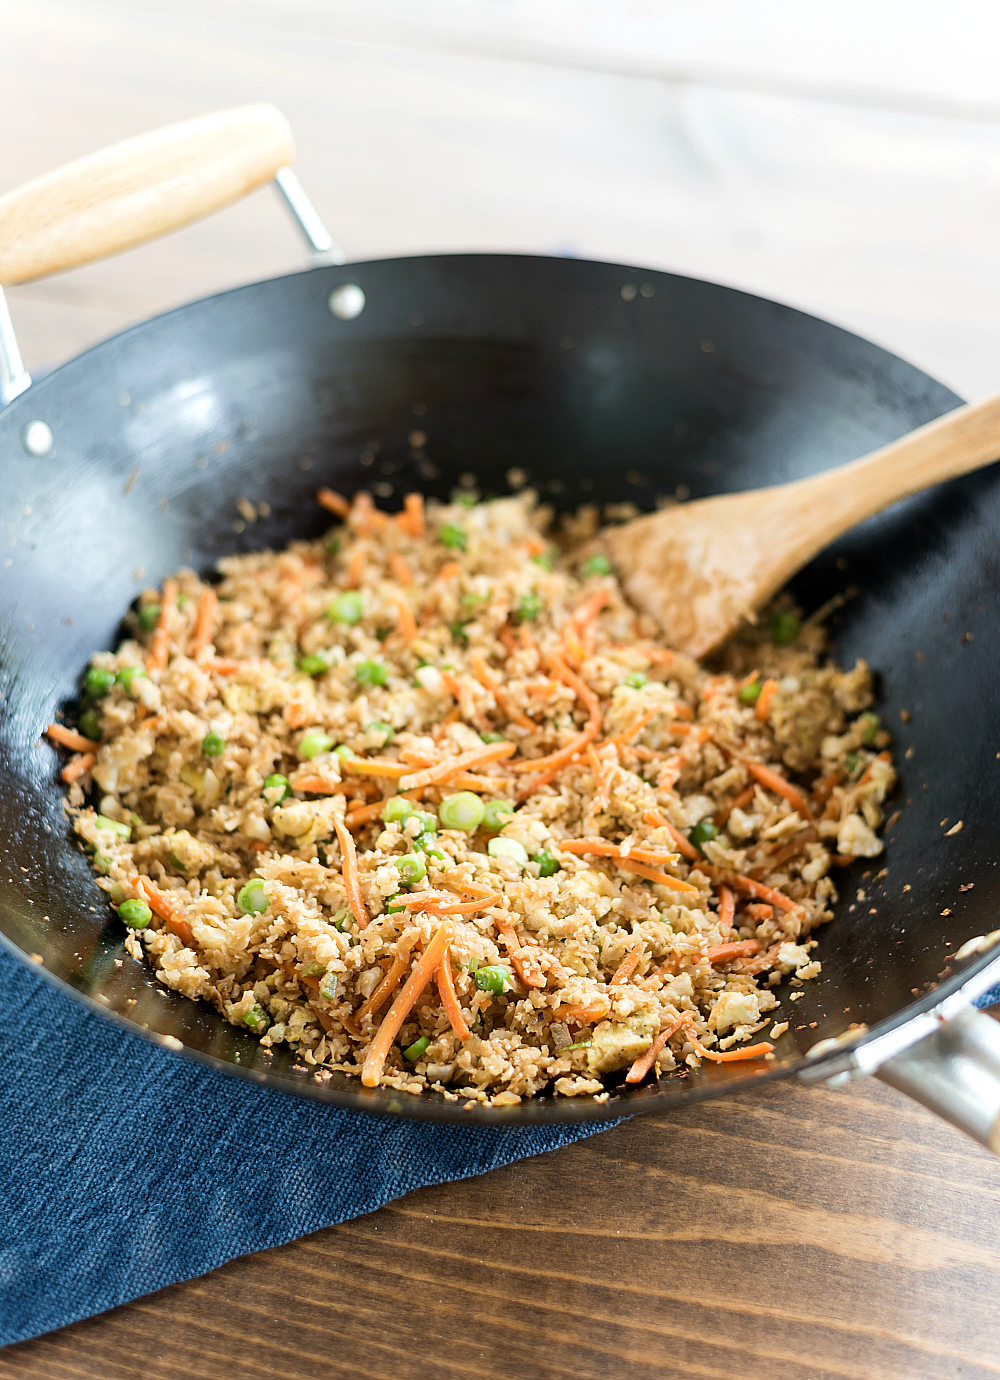 Weight Watchers Cauliflower Fried Rice - 3 Point Weight Watchers Entree - Low Point Weight Watchers Entree